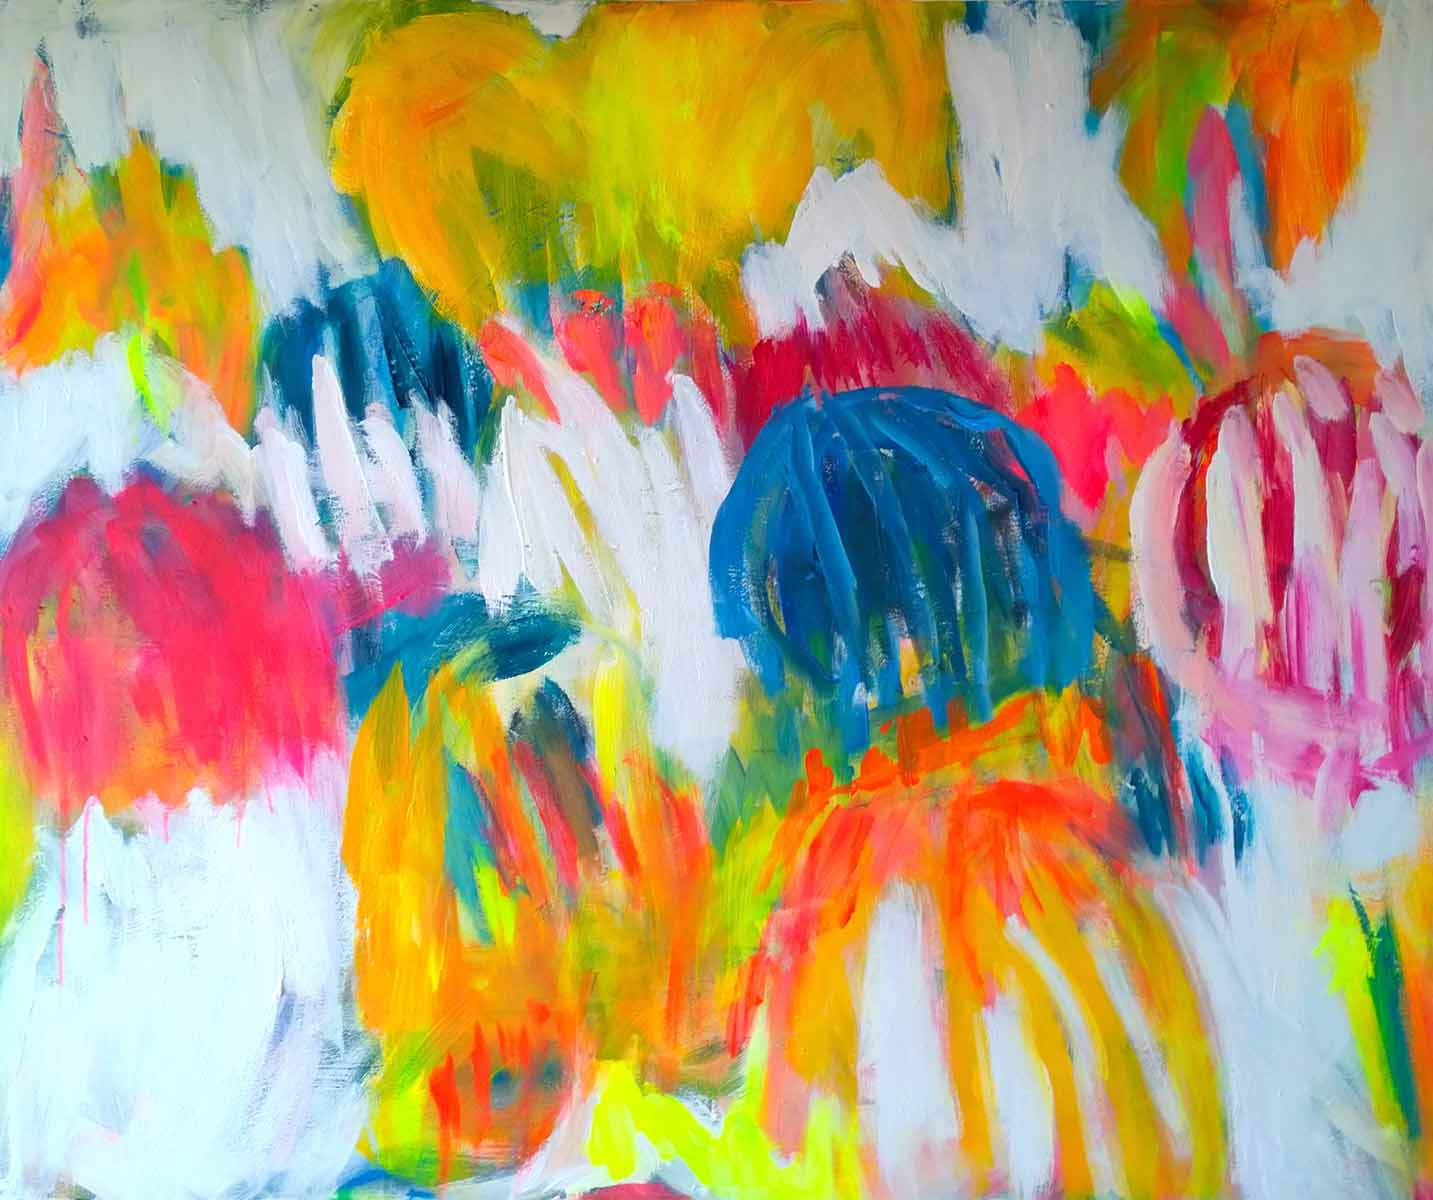 colour migrations no. 3/2016, acrylics/canvas, 100x120cm